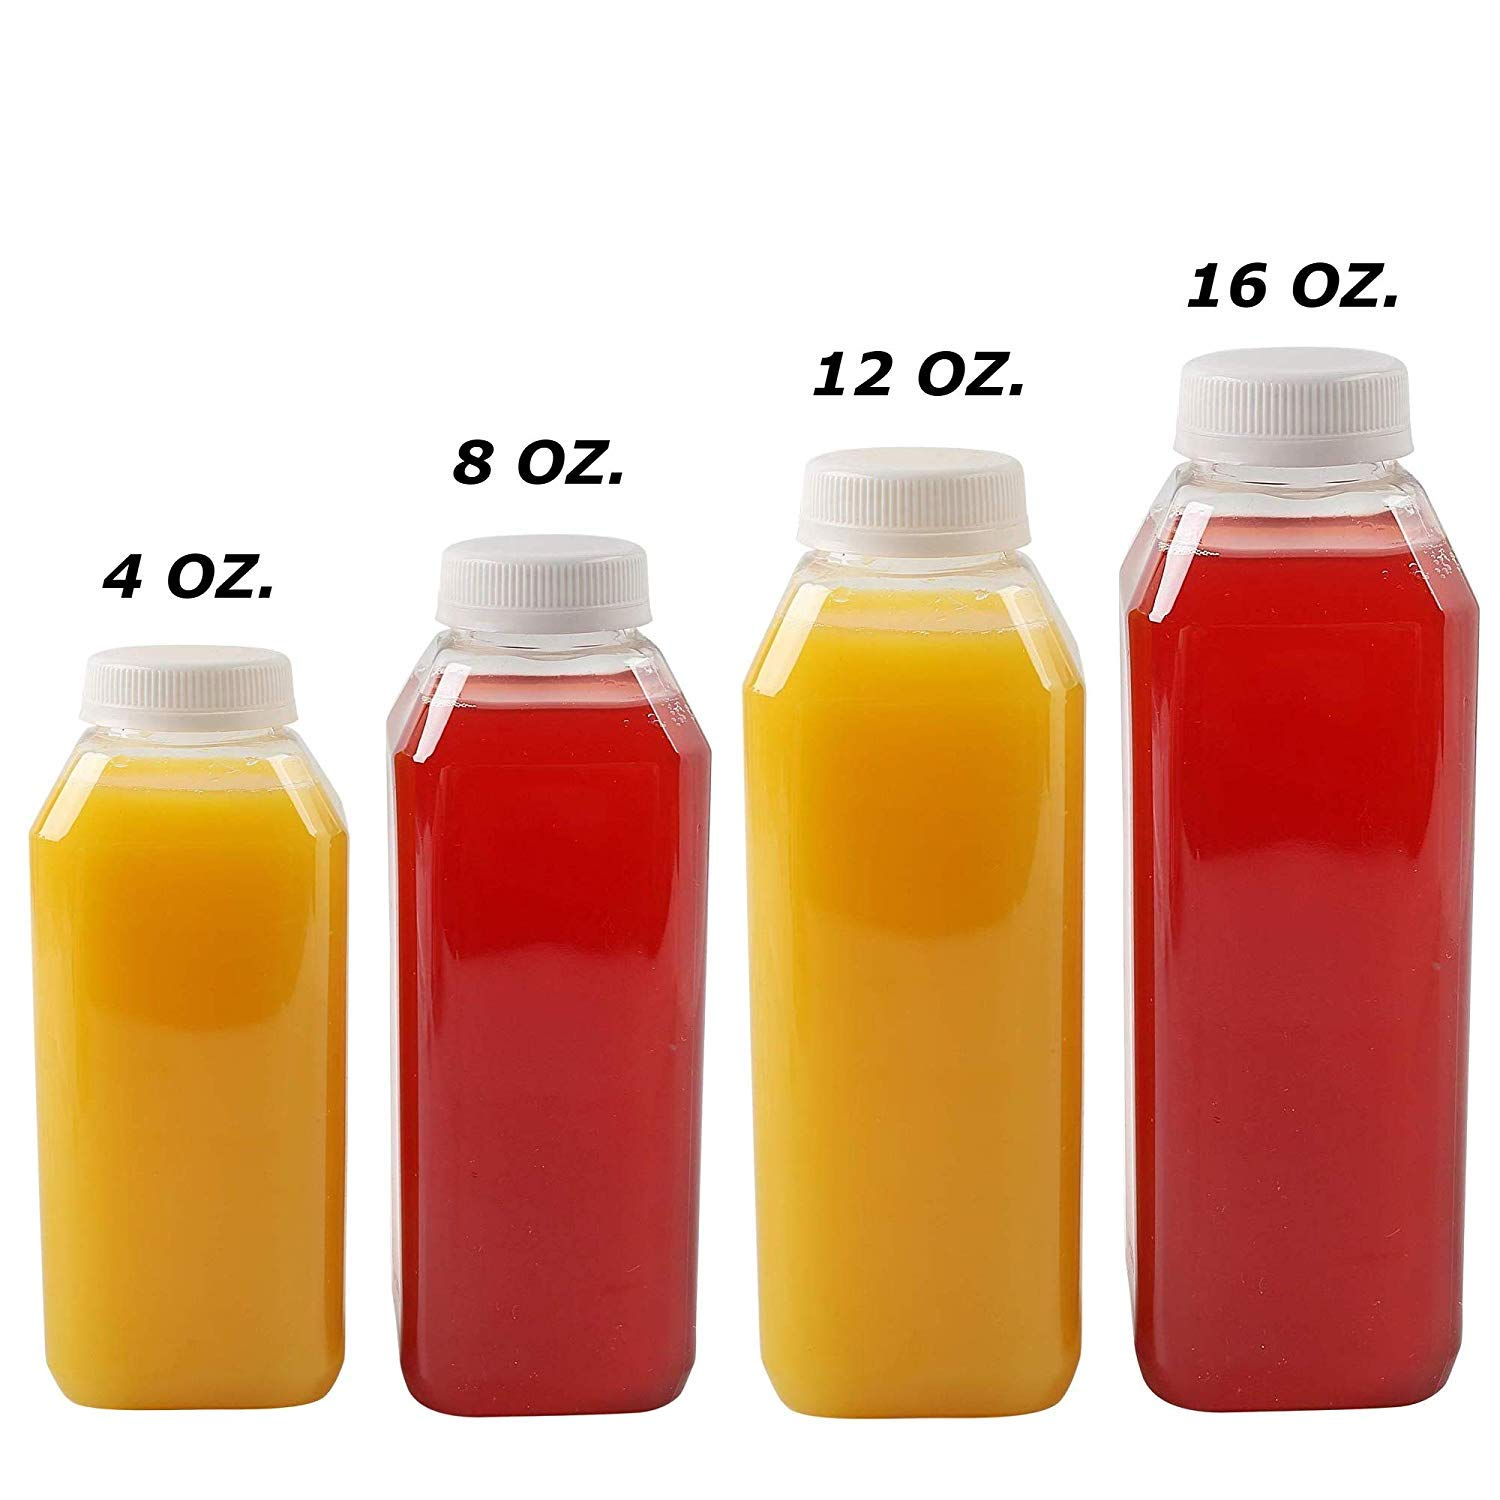 76c247b1532b 12 Oz Plastic Juice Bottles, 10 Pack Food Grade BPA Free Empty Square Milk  Containers, Great For Storing Homemade Juices, Milk, Beverages, With Tamper  ...